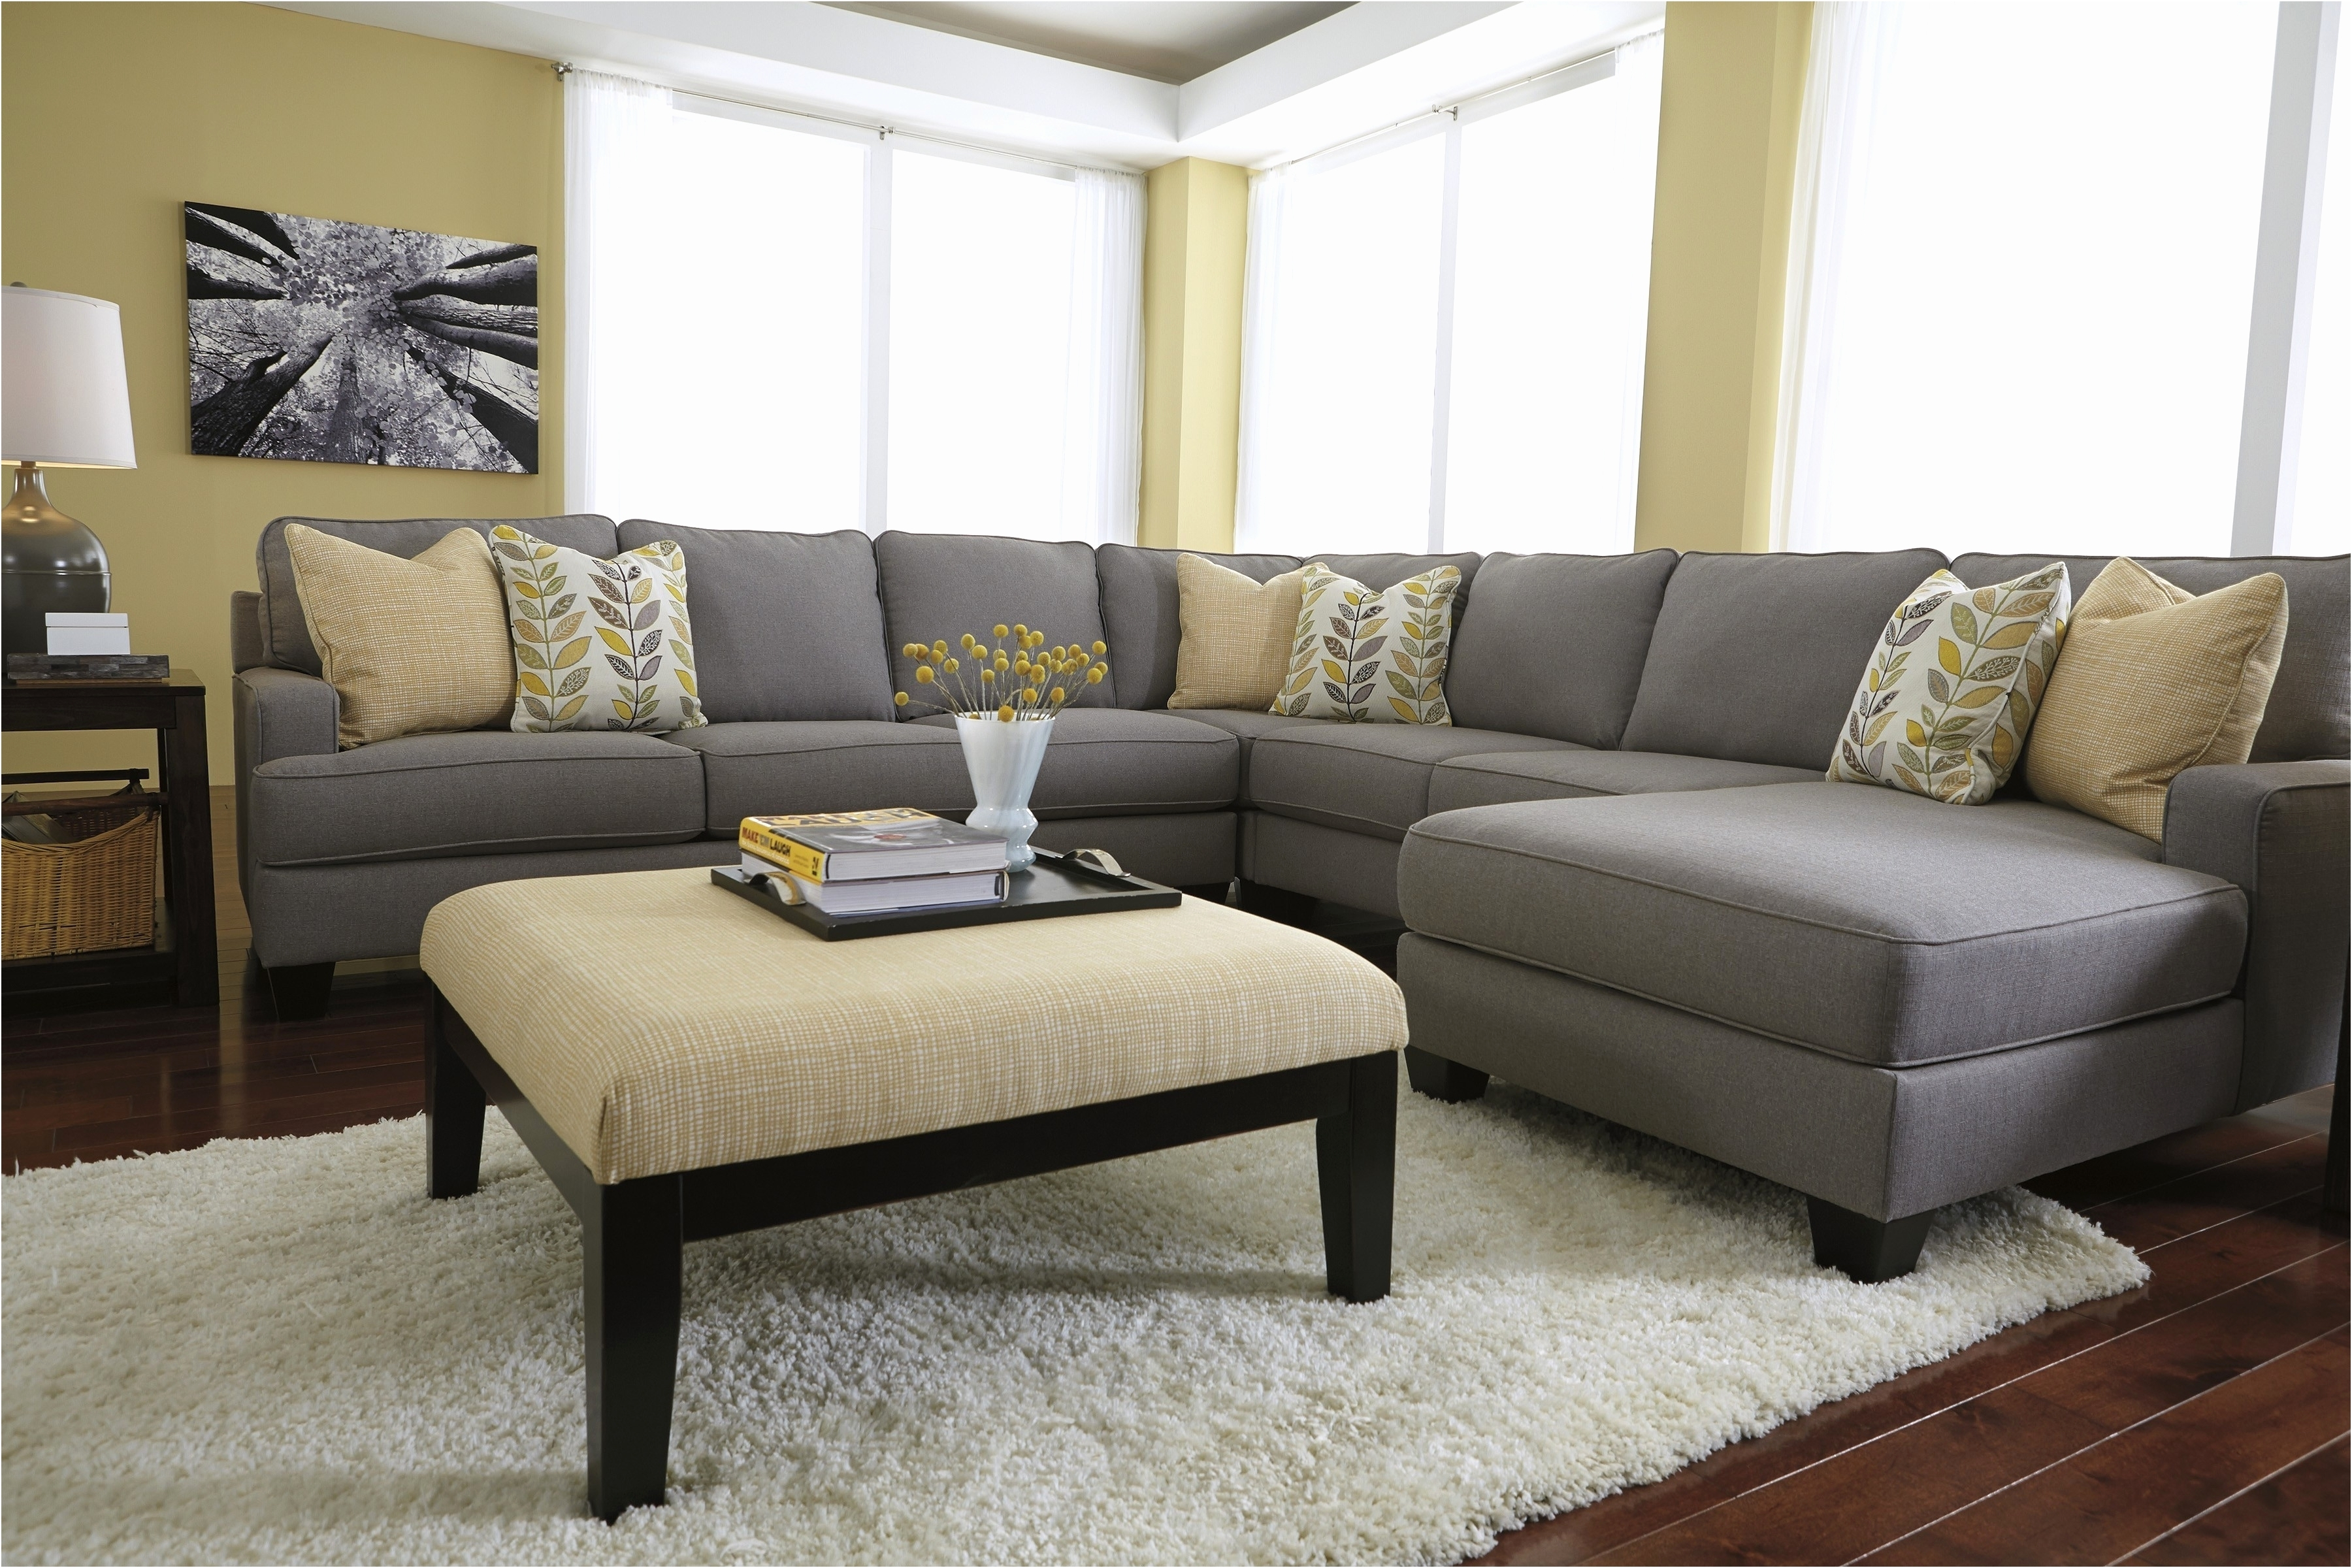 Well Liked Oversized Sectional Sofas For Sale Sofa Set Huge Couches Toronto Within Huge Sofas (View 2 of 20)